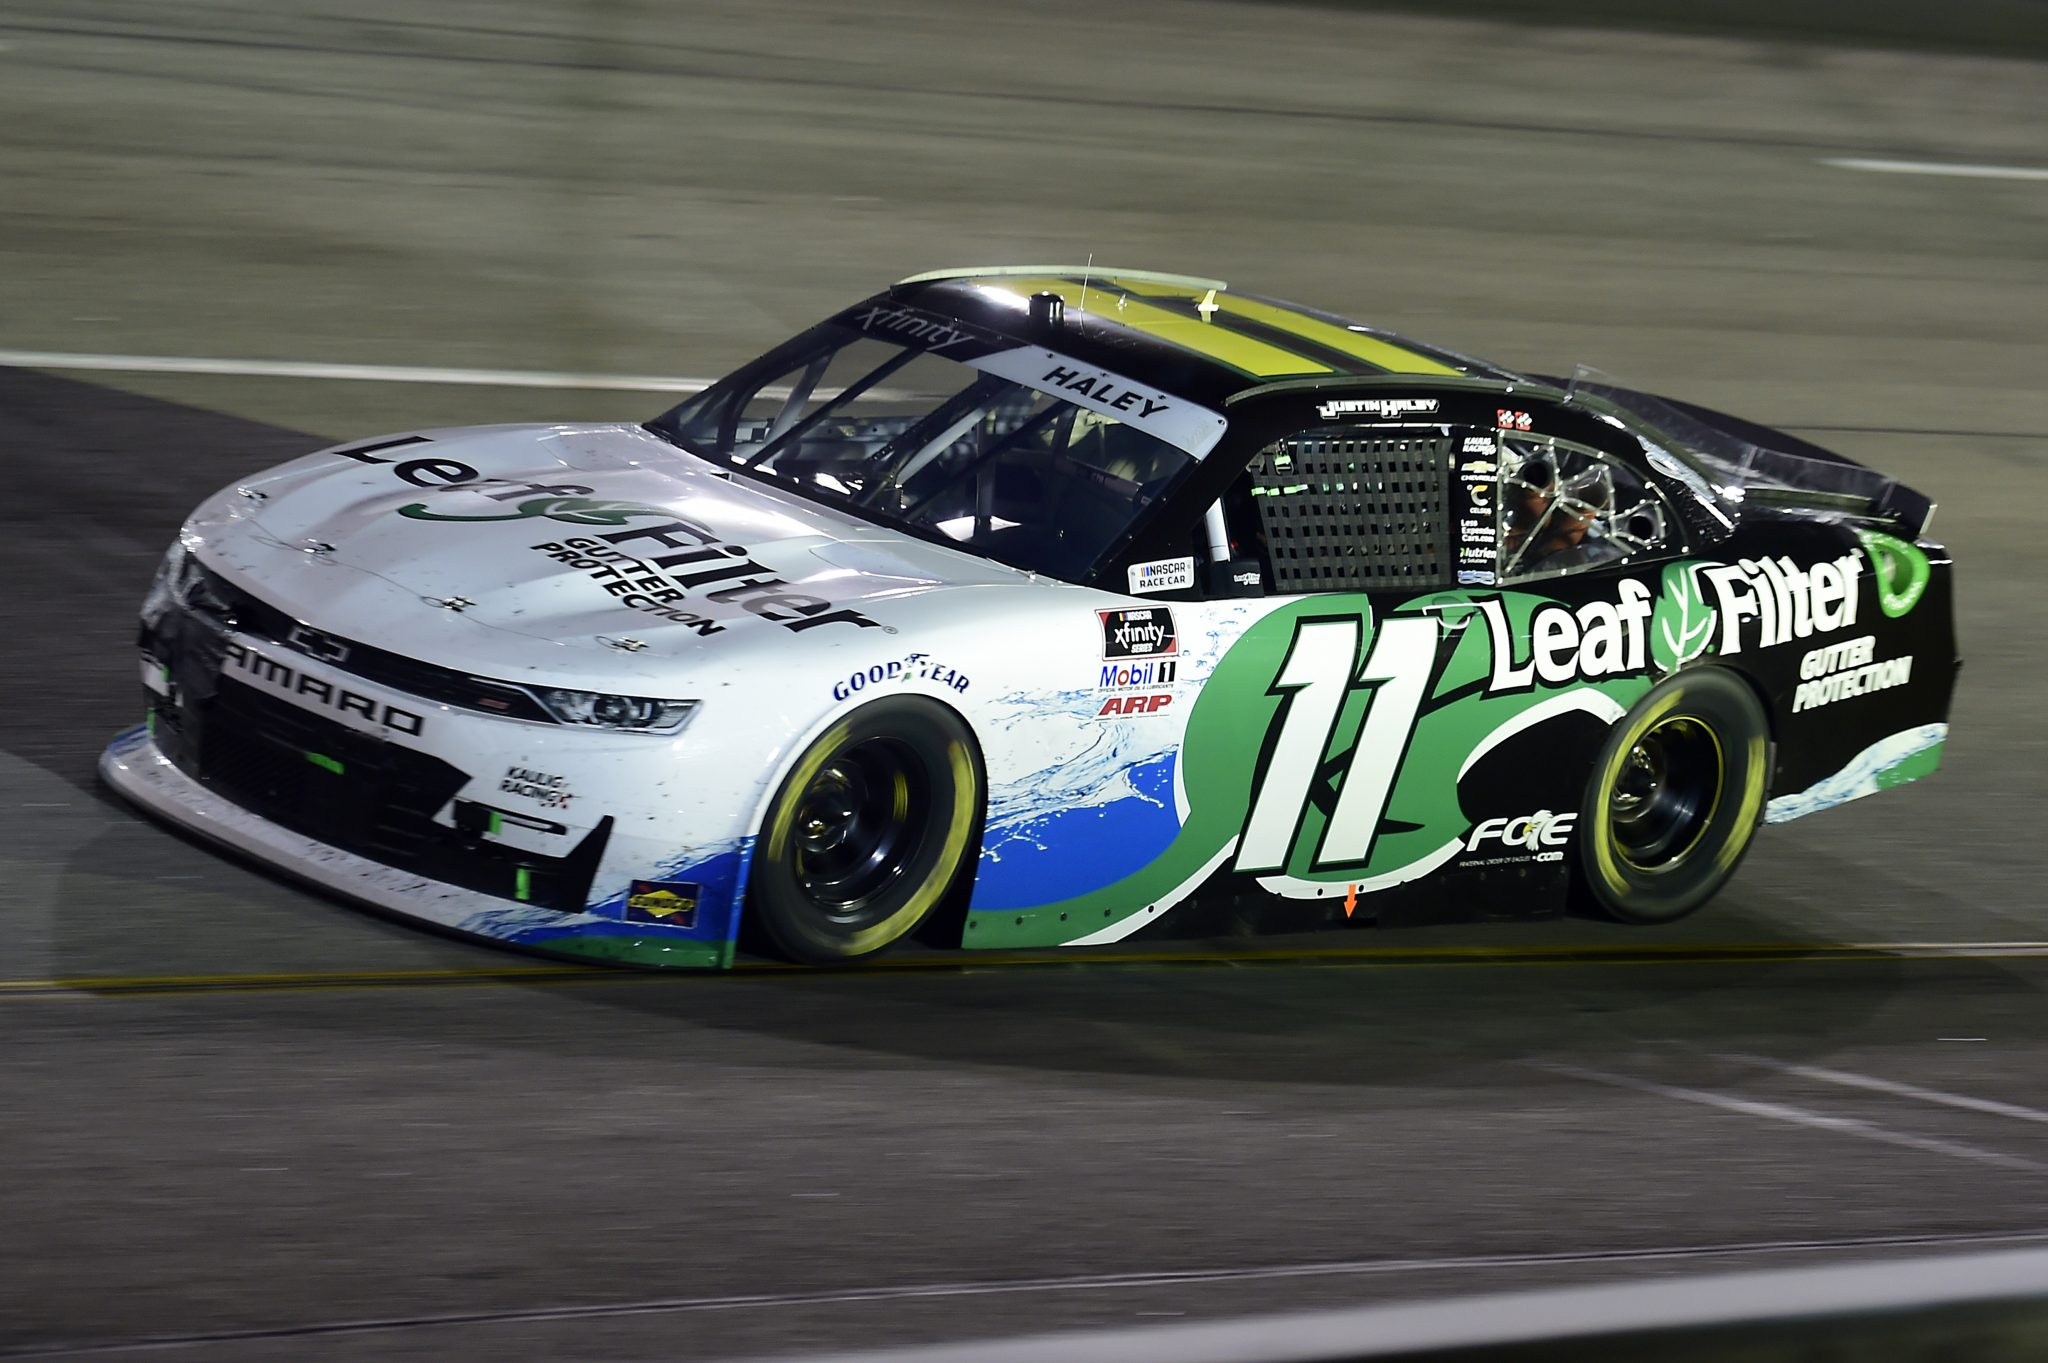 RICHMOND, VIRGINIA - SEPTEMBER 11: Justin Haley, driver of the #11 LeafFilter Gutter Protection Chevrolet, drives during the NASCAR Xfinity Series Go Bowling 250 at Richmond Raceway on September 11, 2020 in Richmond, Virginia. (Photo by Jared C. Tilton/Getty Images) | Getty Images